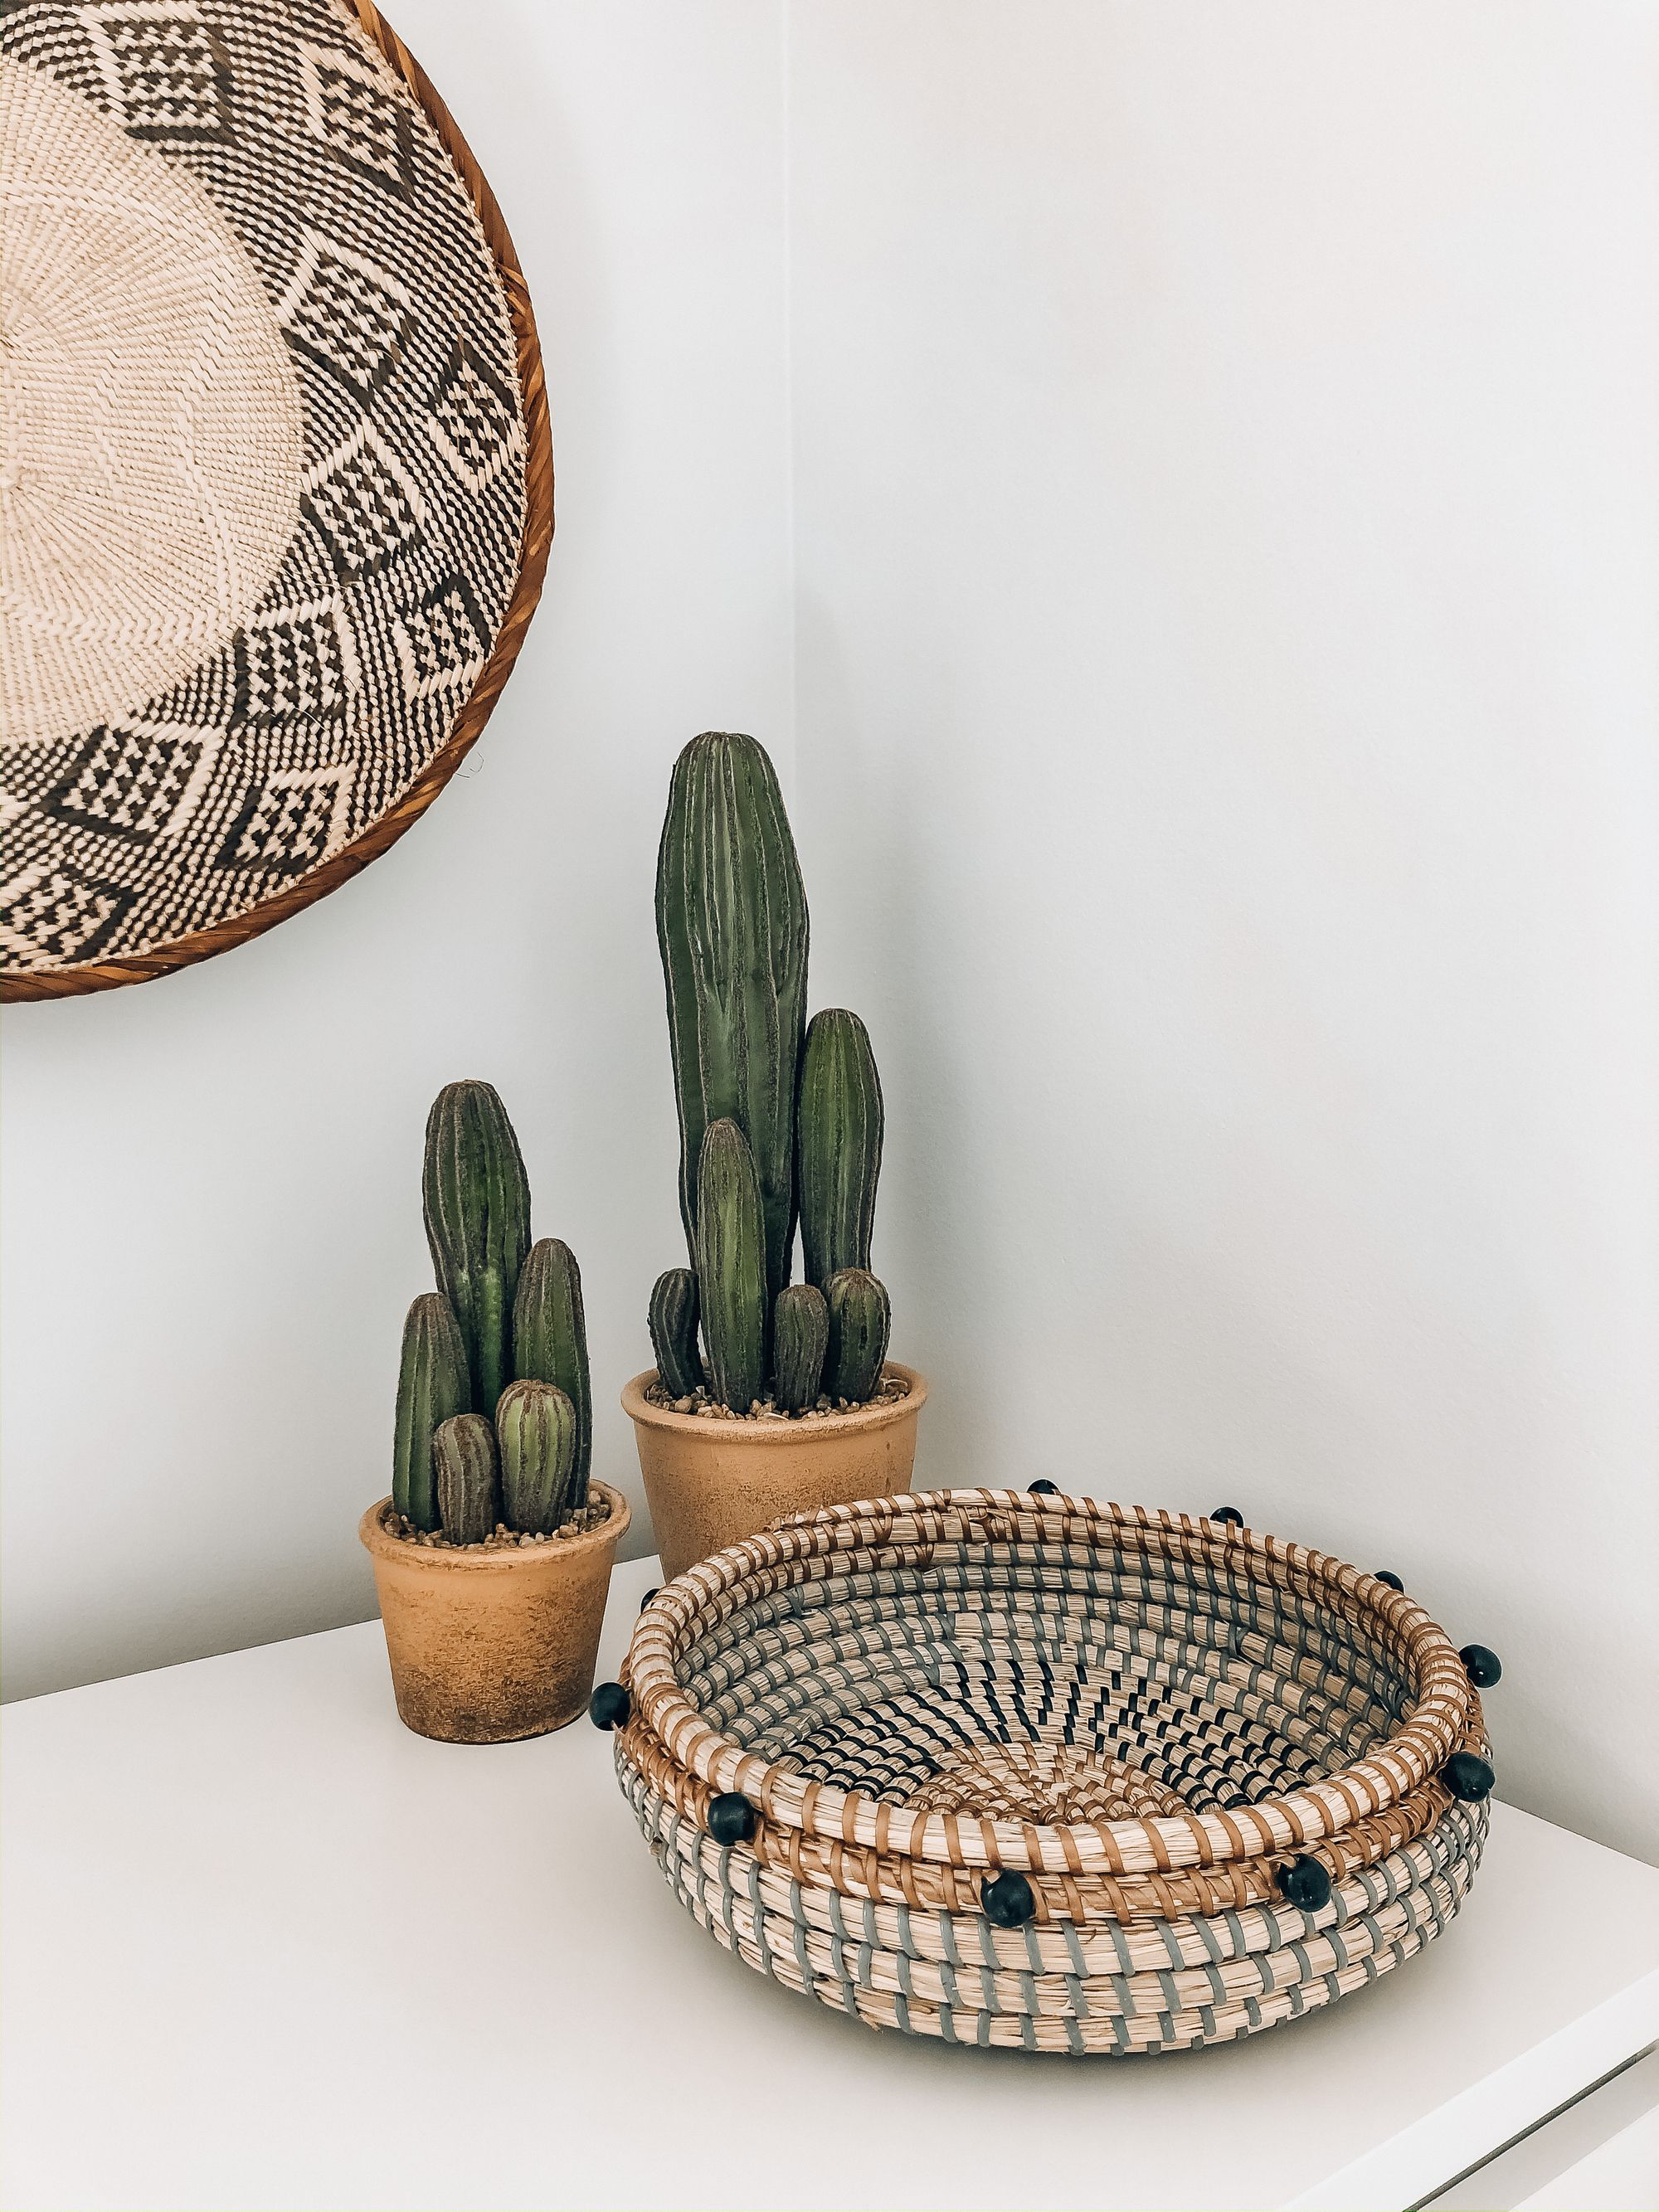 Get The Look For Your Southwestern Home Decor With Fake Cactus And Woven Baskets From Afloral Com Image In 2020 Fake House Plants Southwest Bedroom Decor House Plants